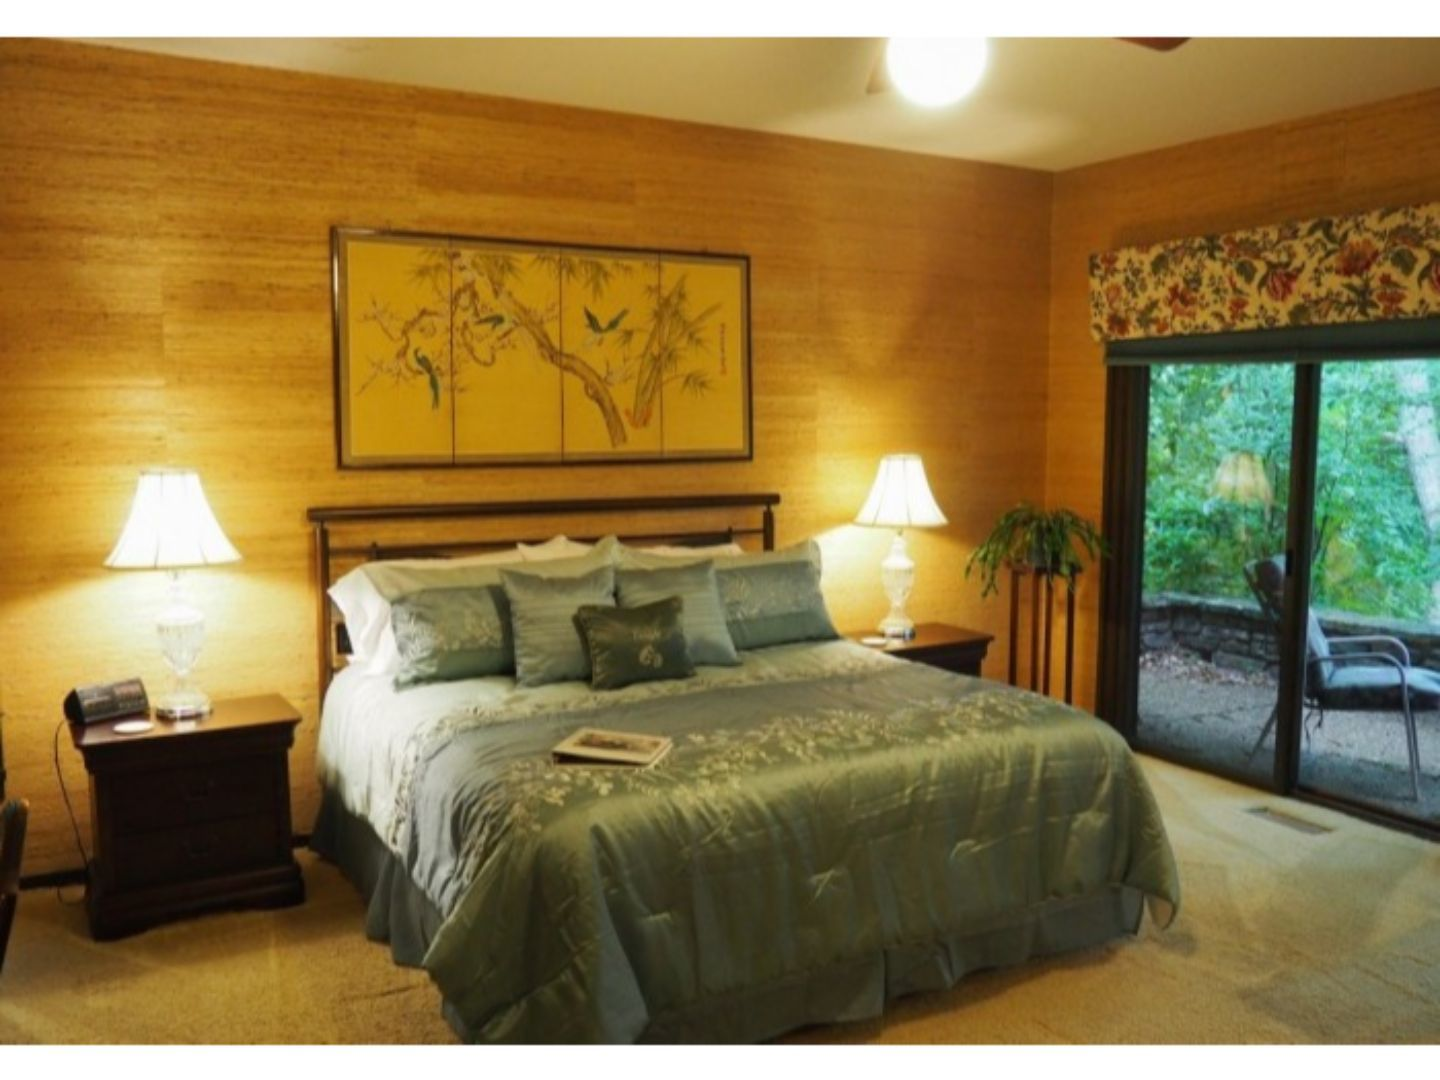 A bedroom with a large bed in a hotel room at The Inn at Bella Vista.